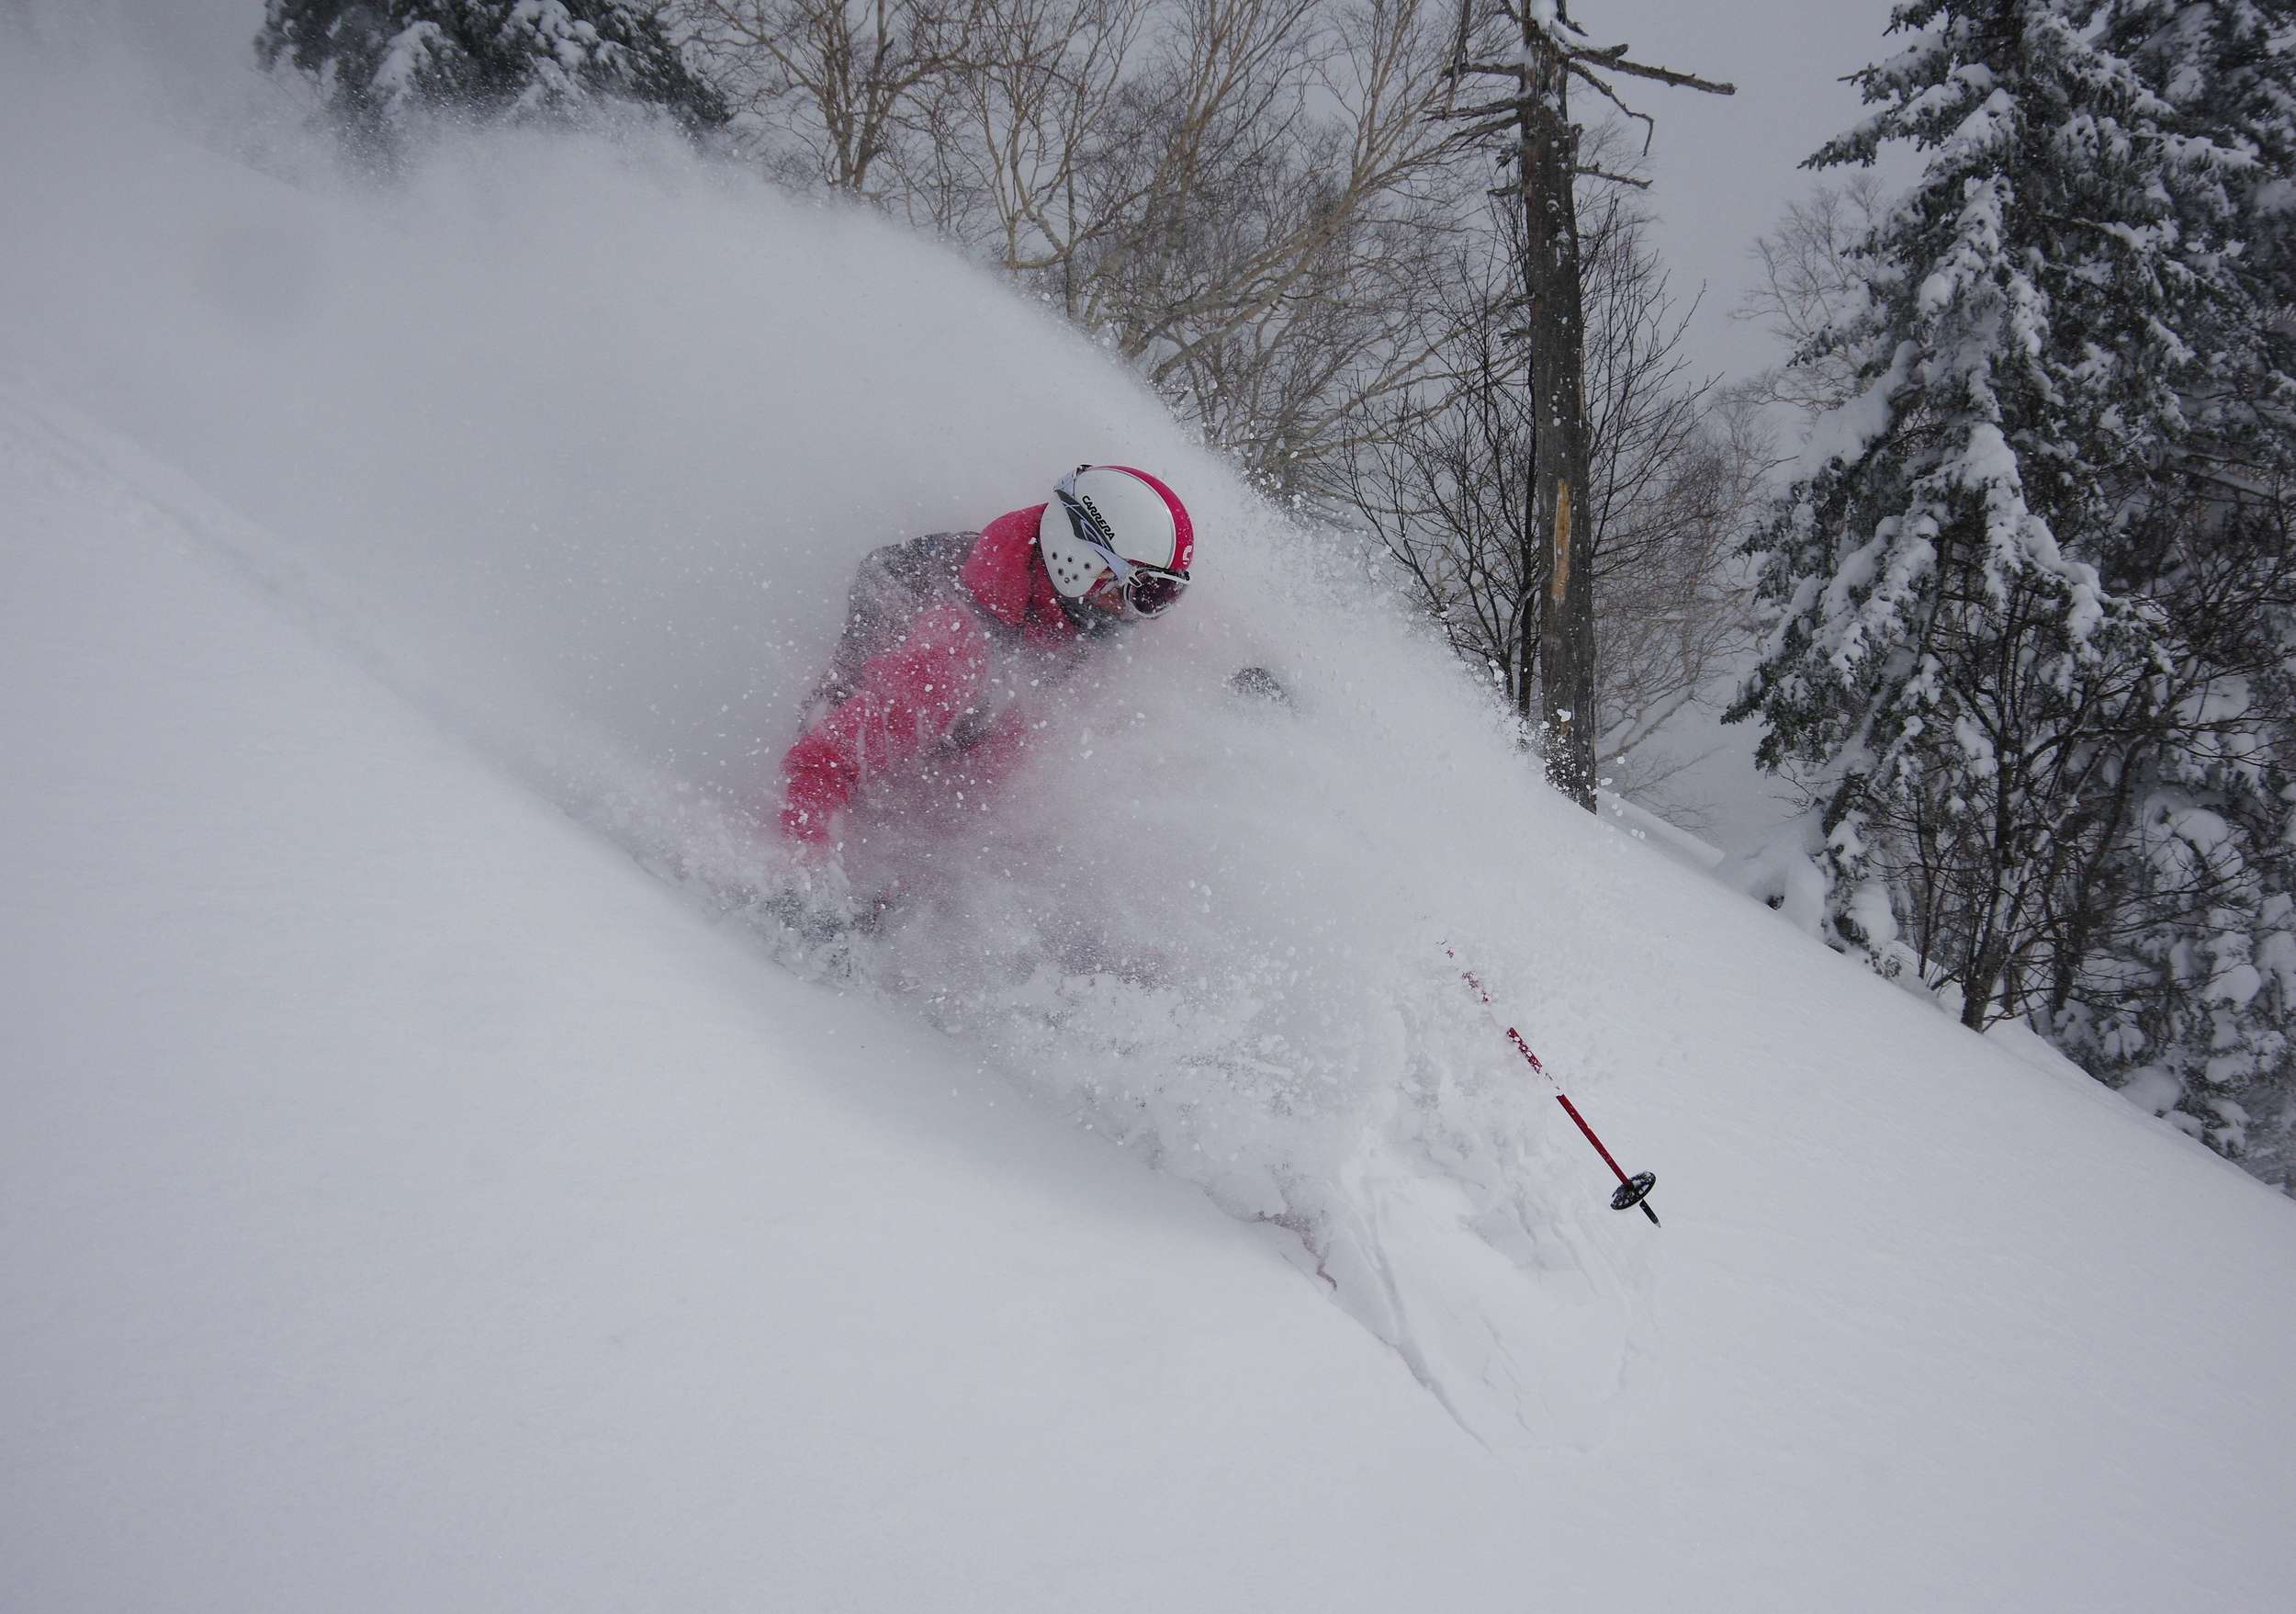 Hard not to love some powder in the face!